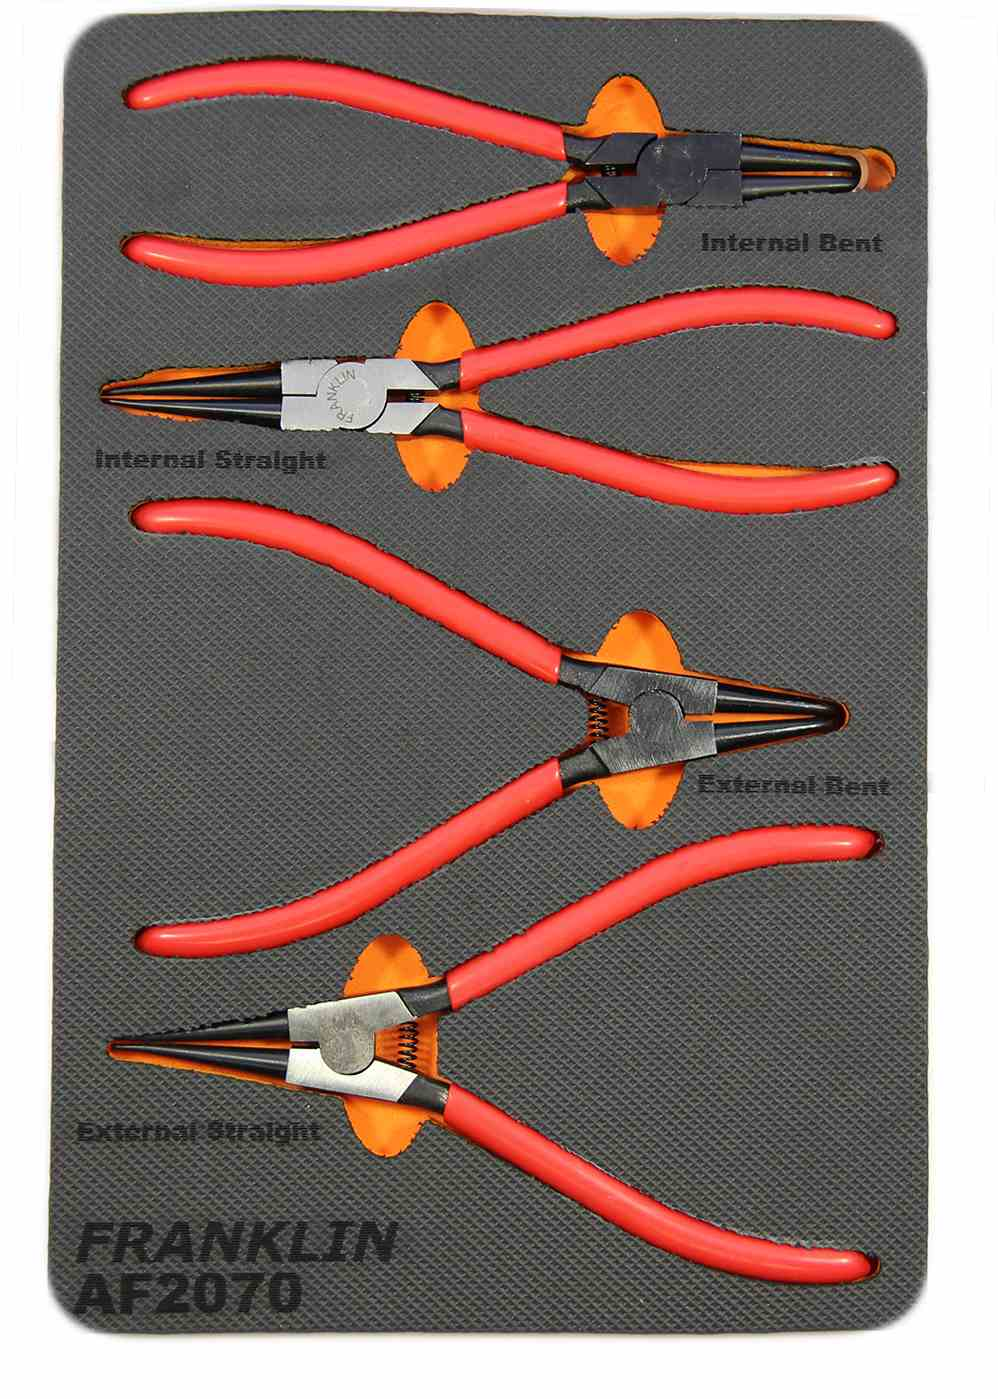 Franklin 4 pce Int/Ext Circlip Plier Set